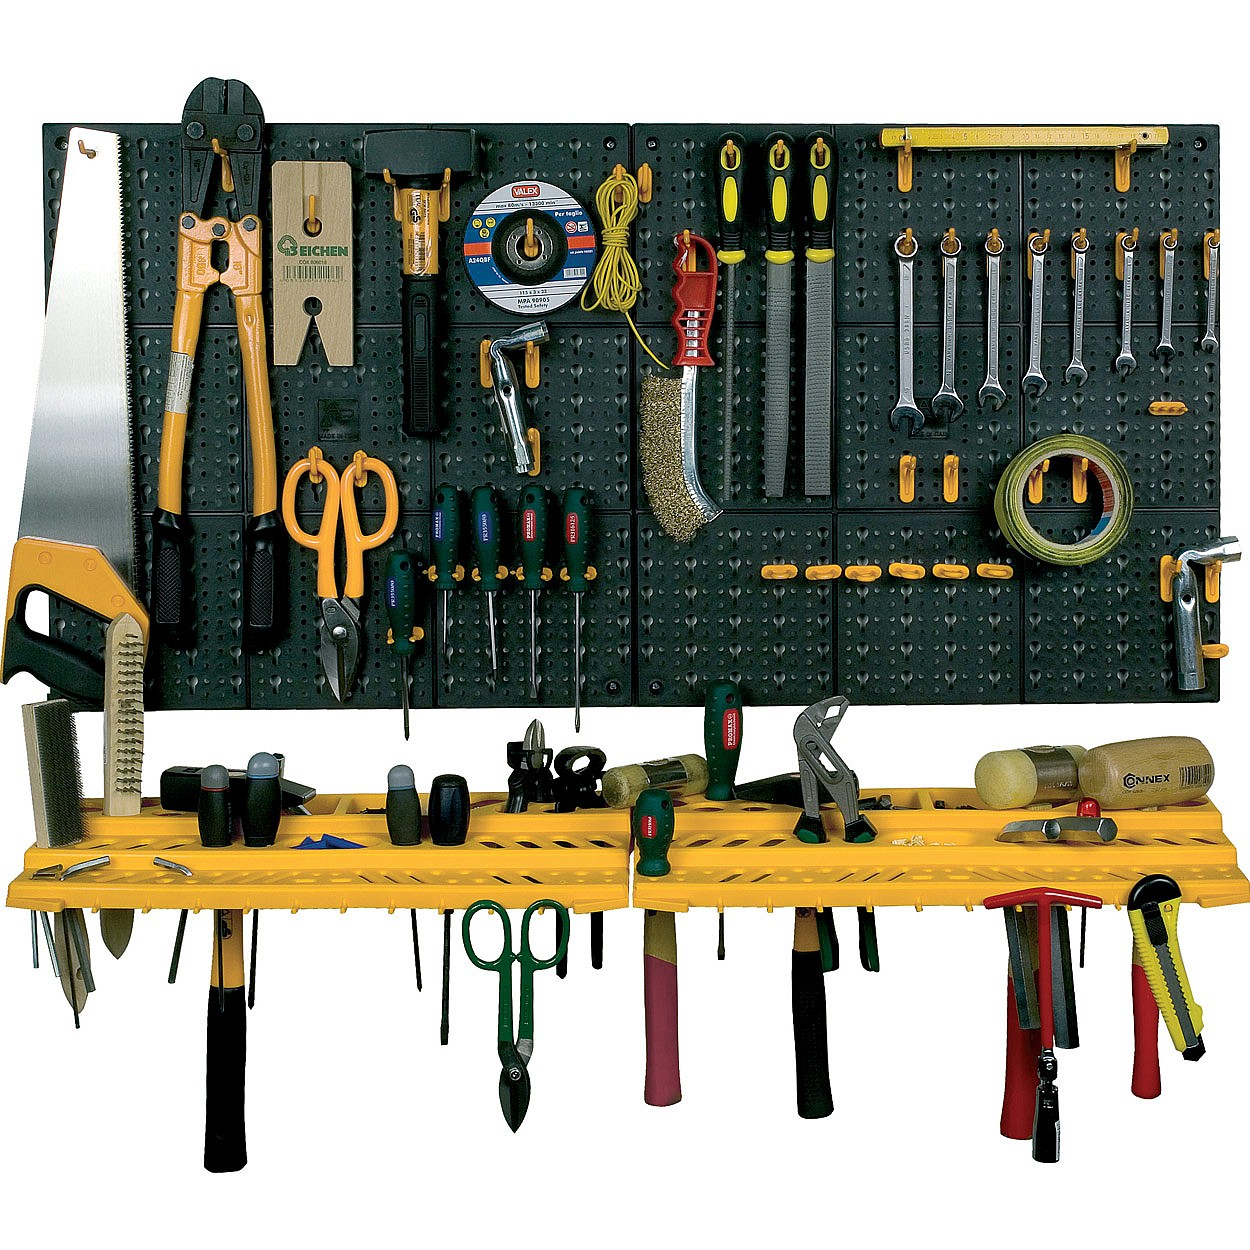 series rail tool i with metaltech safety md scaffold and jobsite imcnt shelf folding